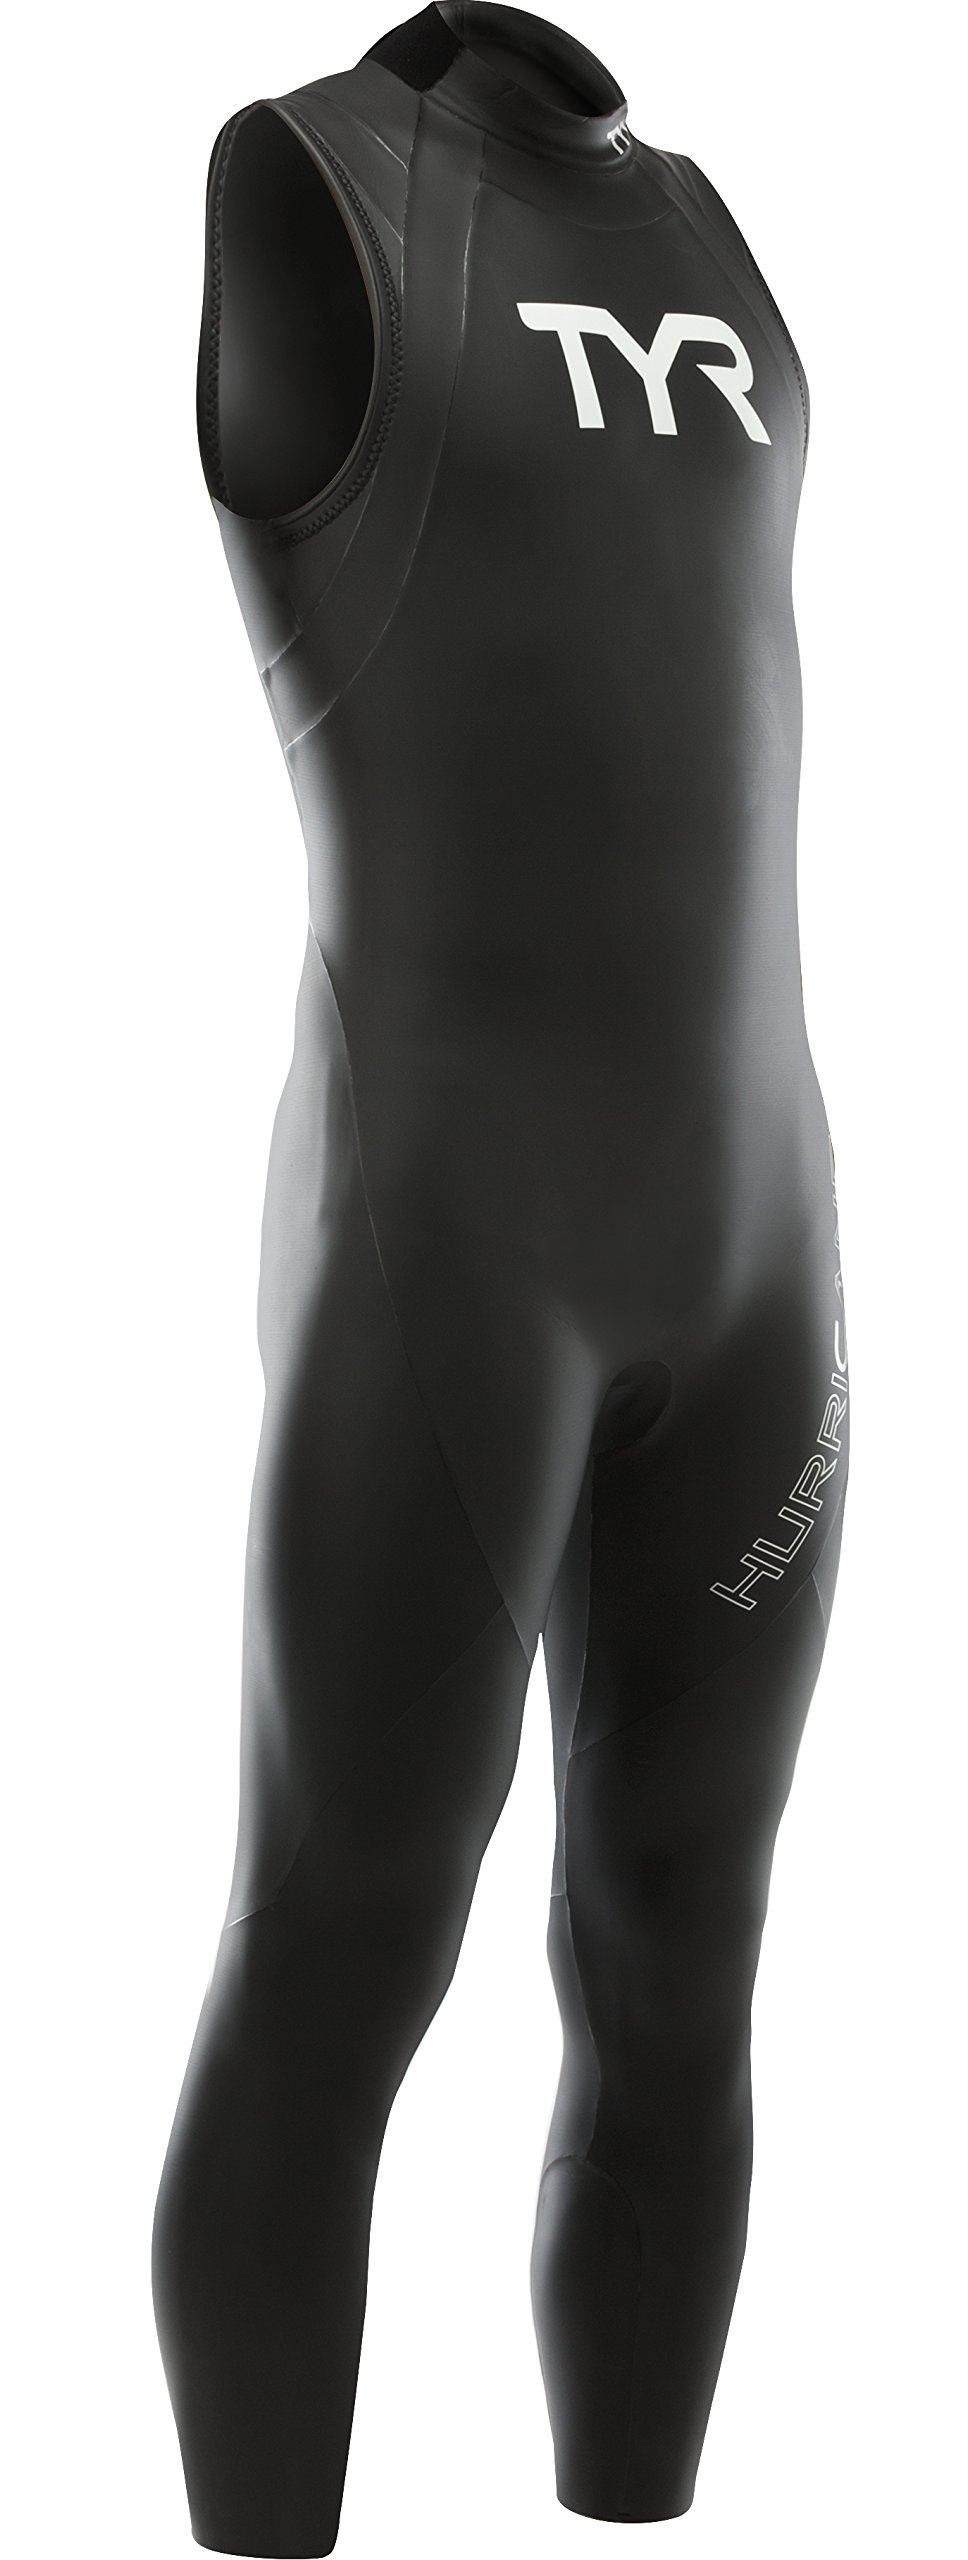 TYR Sport Men's Hurricane Sleeveless Wetsuit Category 1, Black/White, X-Large by TYR